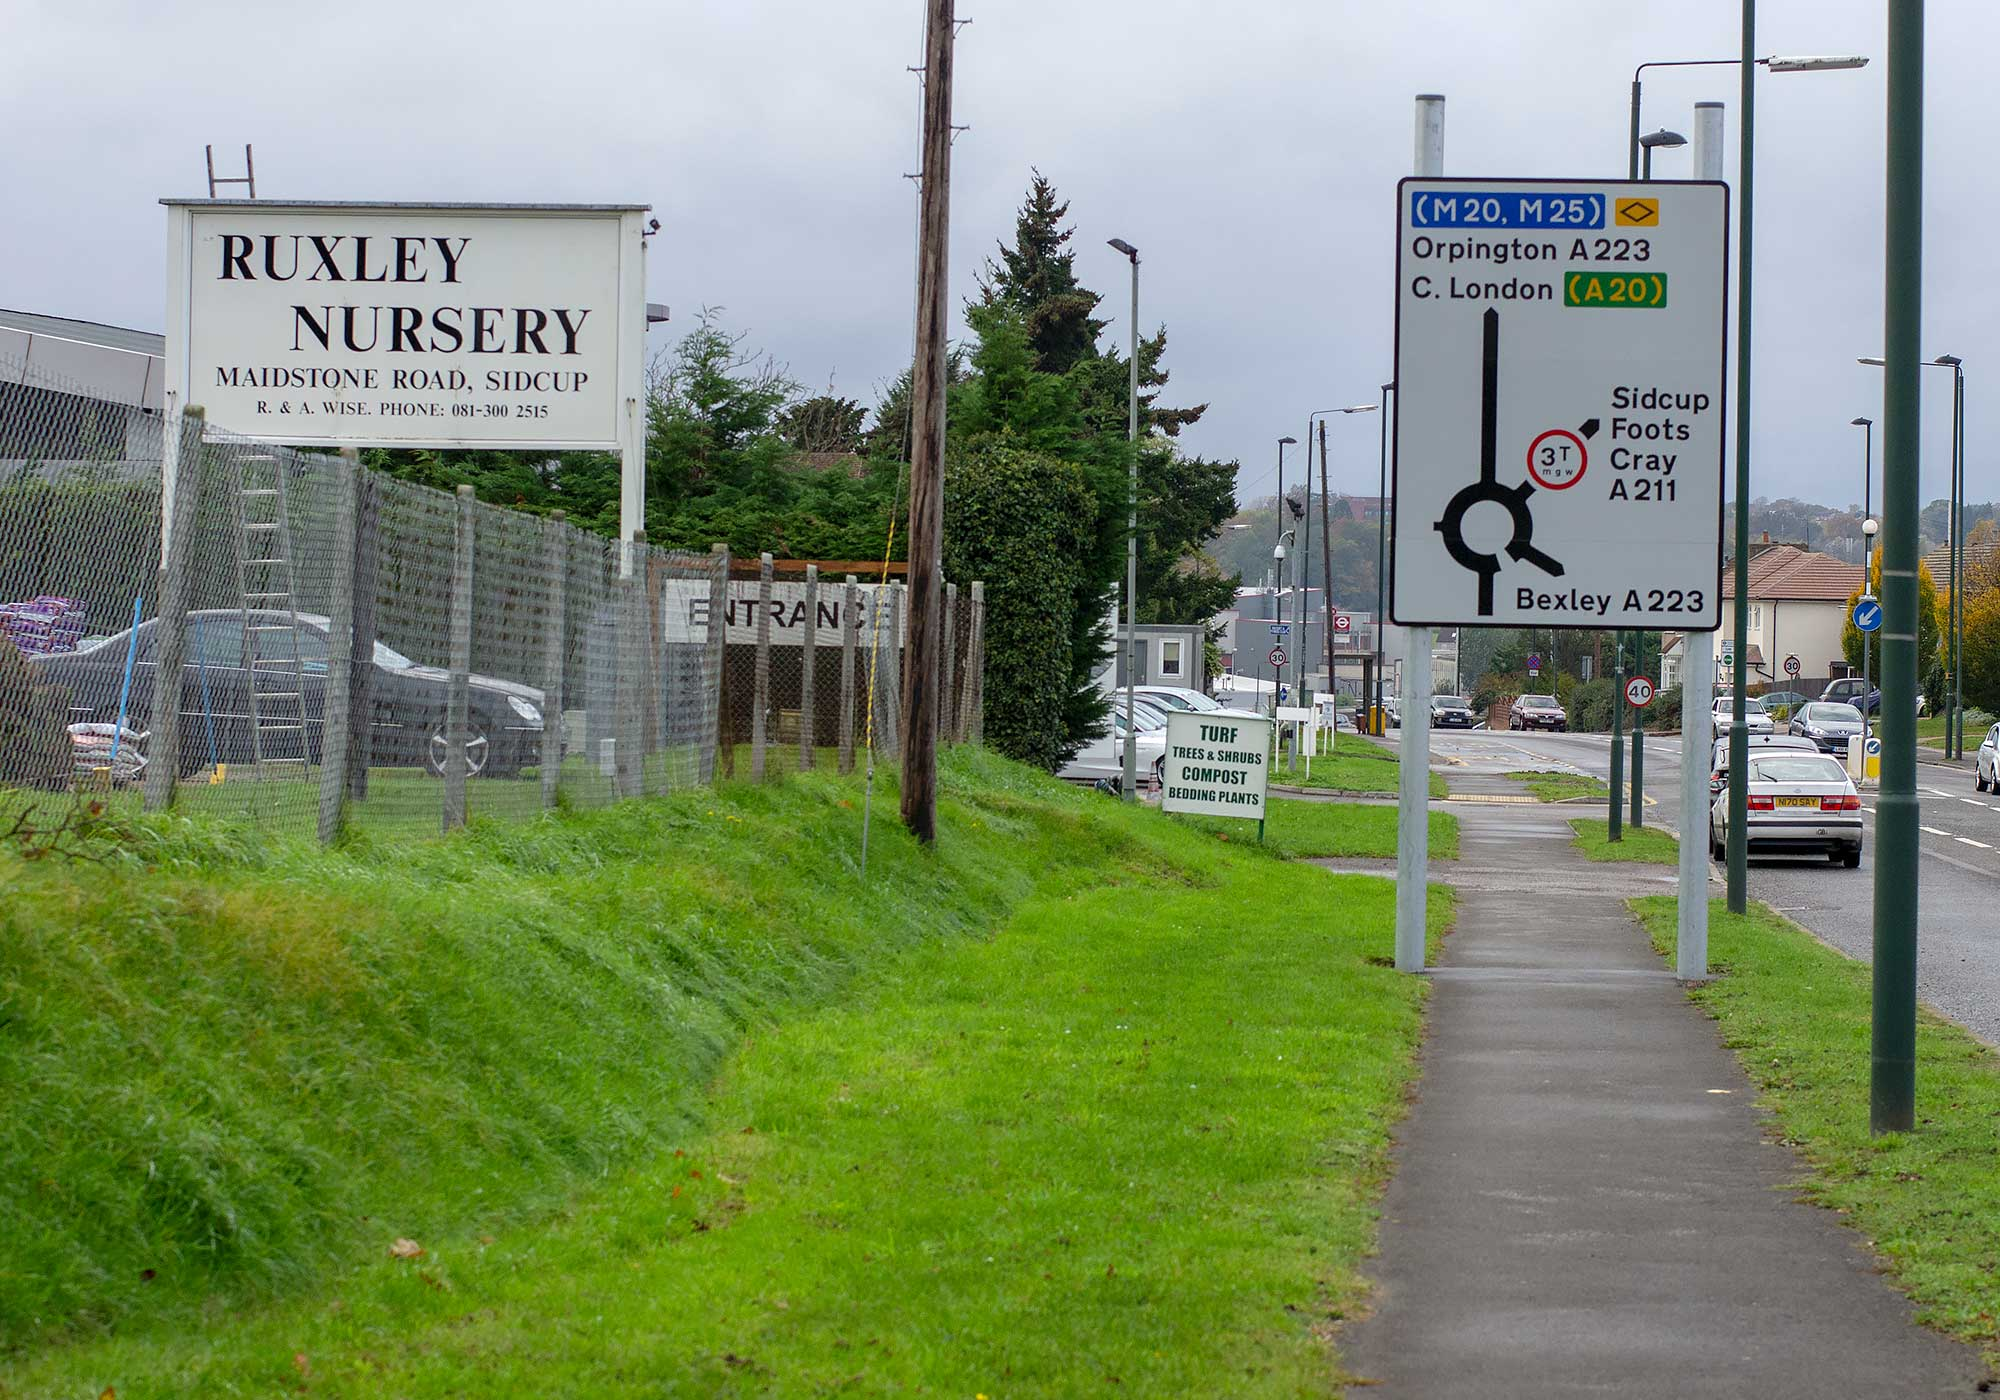 Ruxley nursery sign